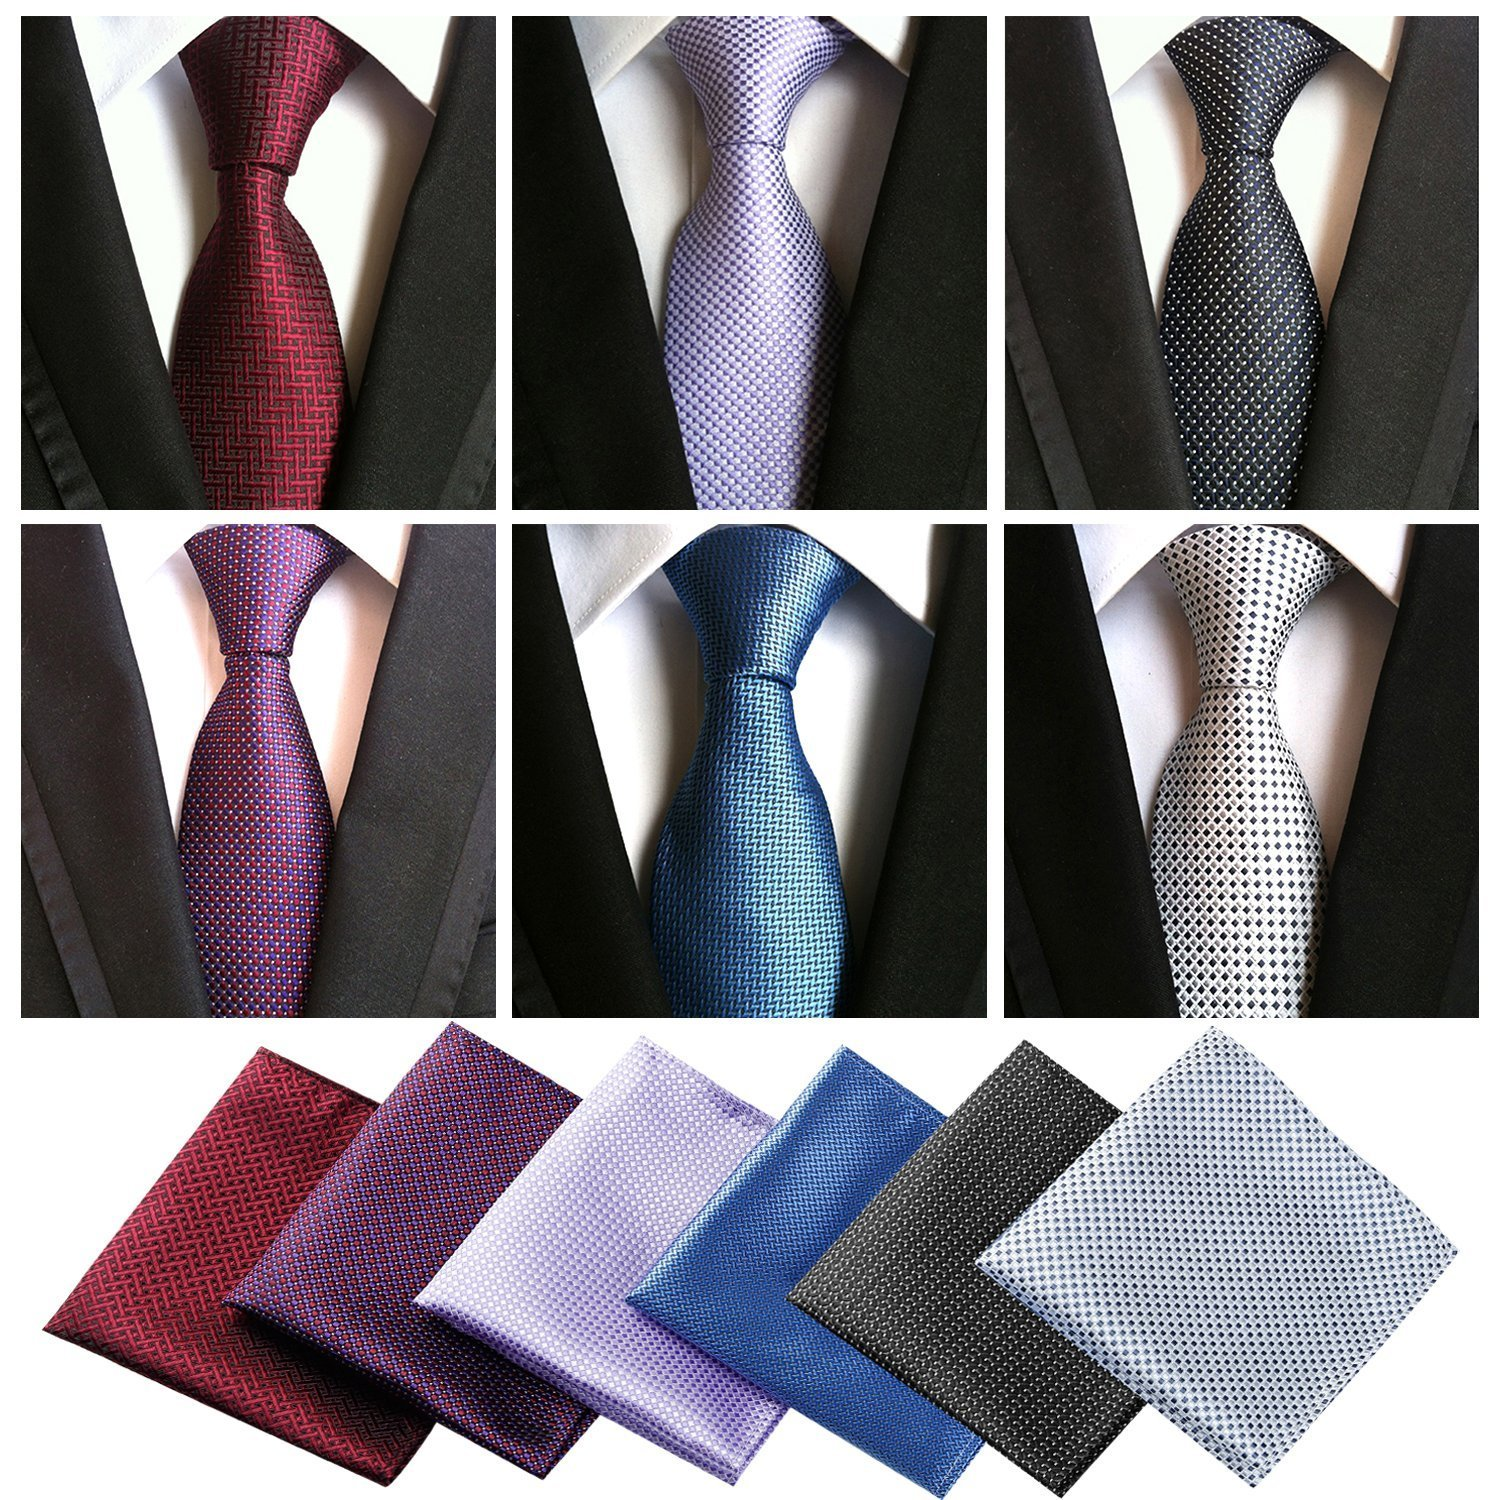 Match-up Polyester Woven Slim Skinny Narrow Men Tie Necktie Handkerchief Pocket Square Suit Set 14 Apparel Accessories